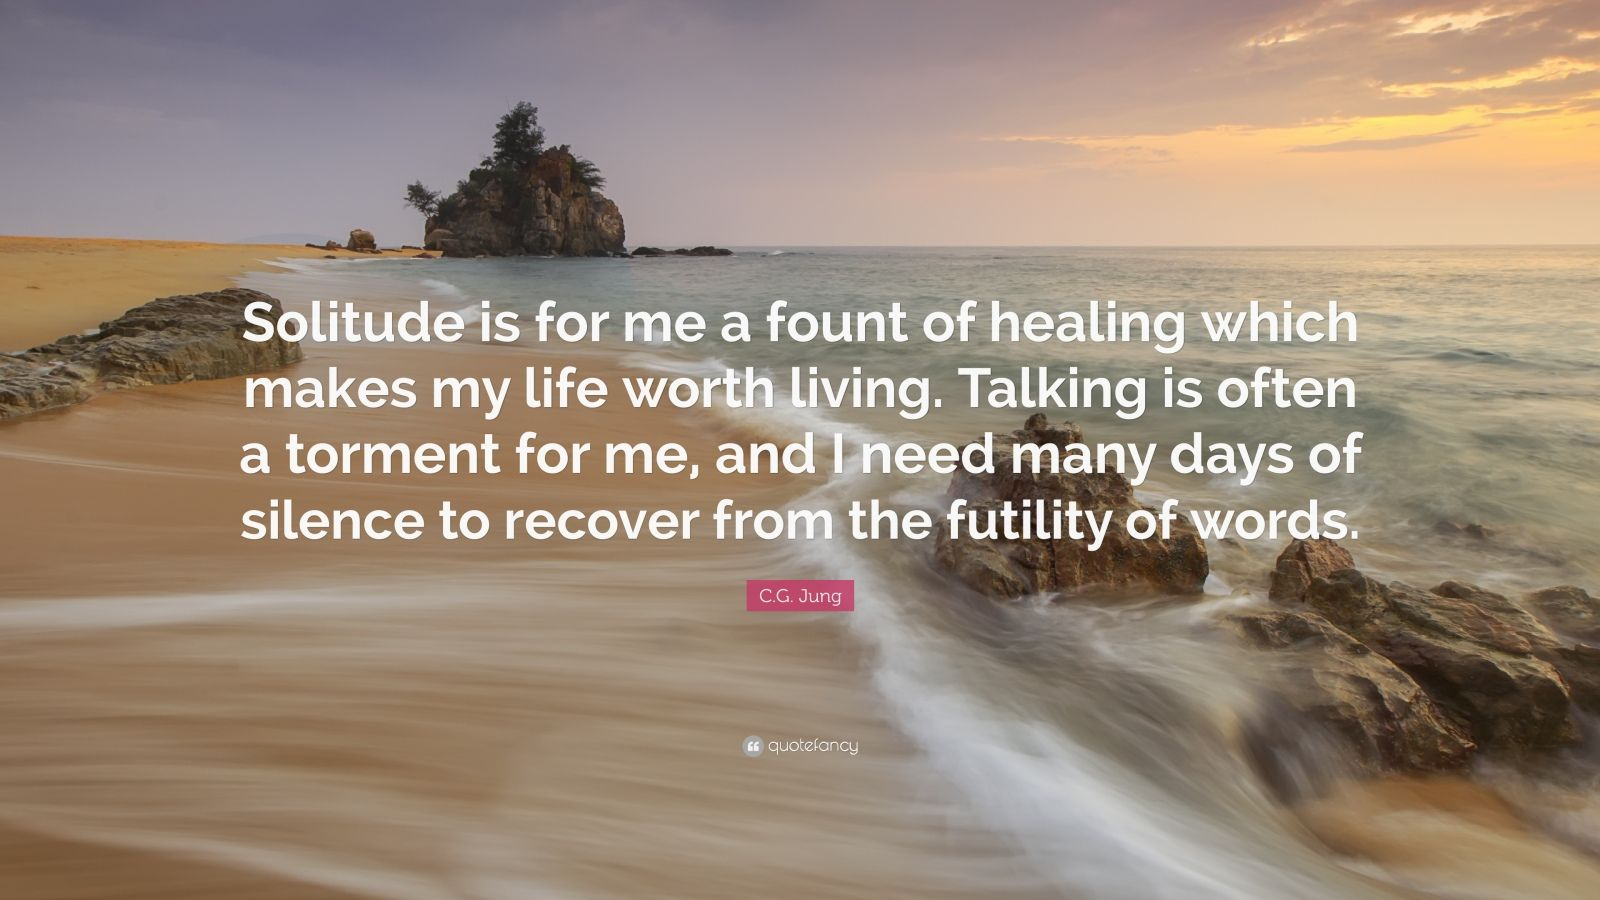 """C.G. Jung Quote: """"Solitude is for me a fount of healing which makes my life worth living. Talking is often a torment for me, and I need many days of silence to recover from the futility of words."""""""